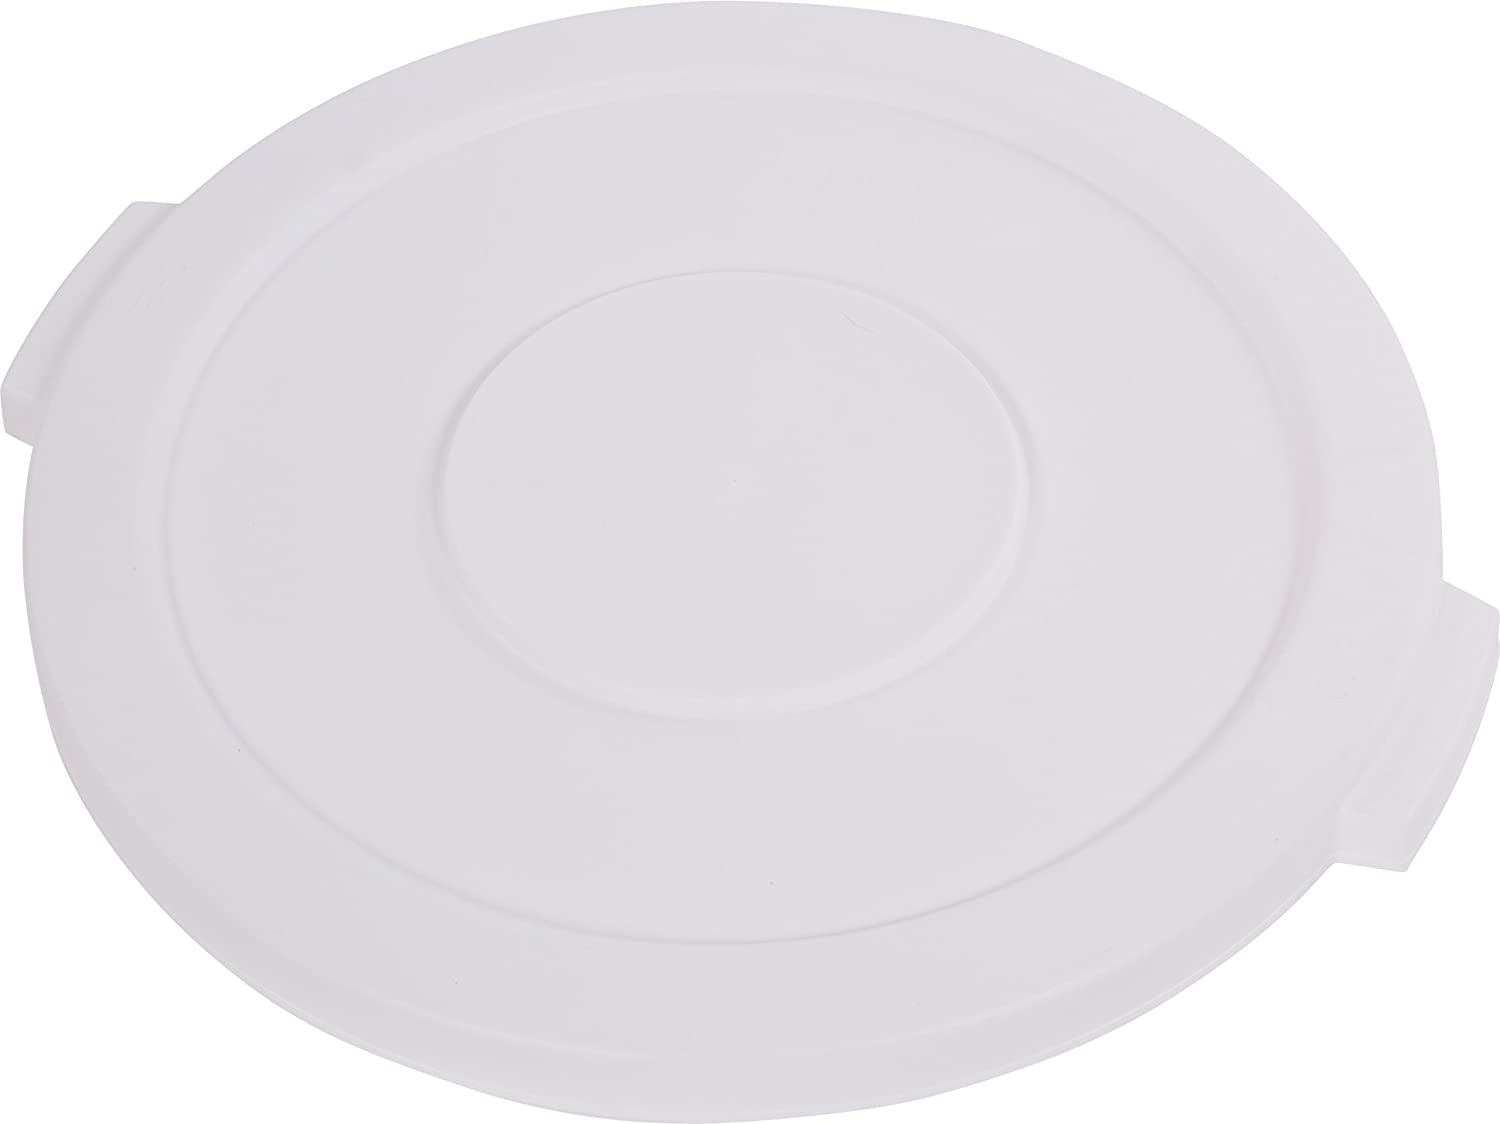 Carlisle 34102102 Bronco Round Waste Bin Food Container Lid, 20 Gallon, White